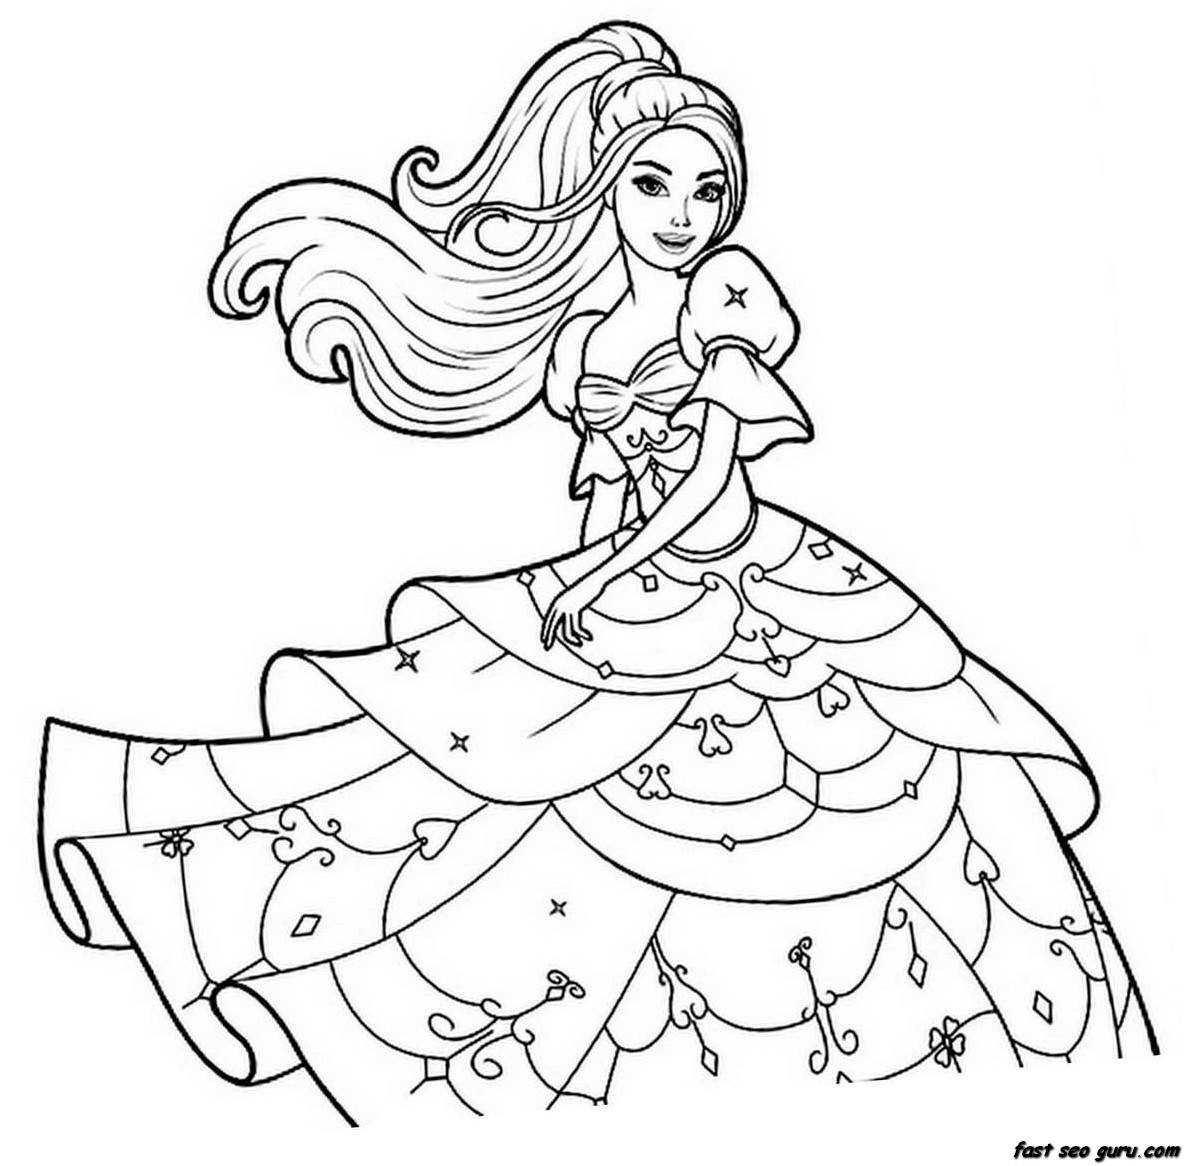 Printable Coloring Books For Girls 61 On Free Online With Coloring